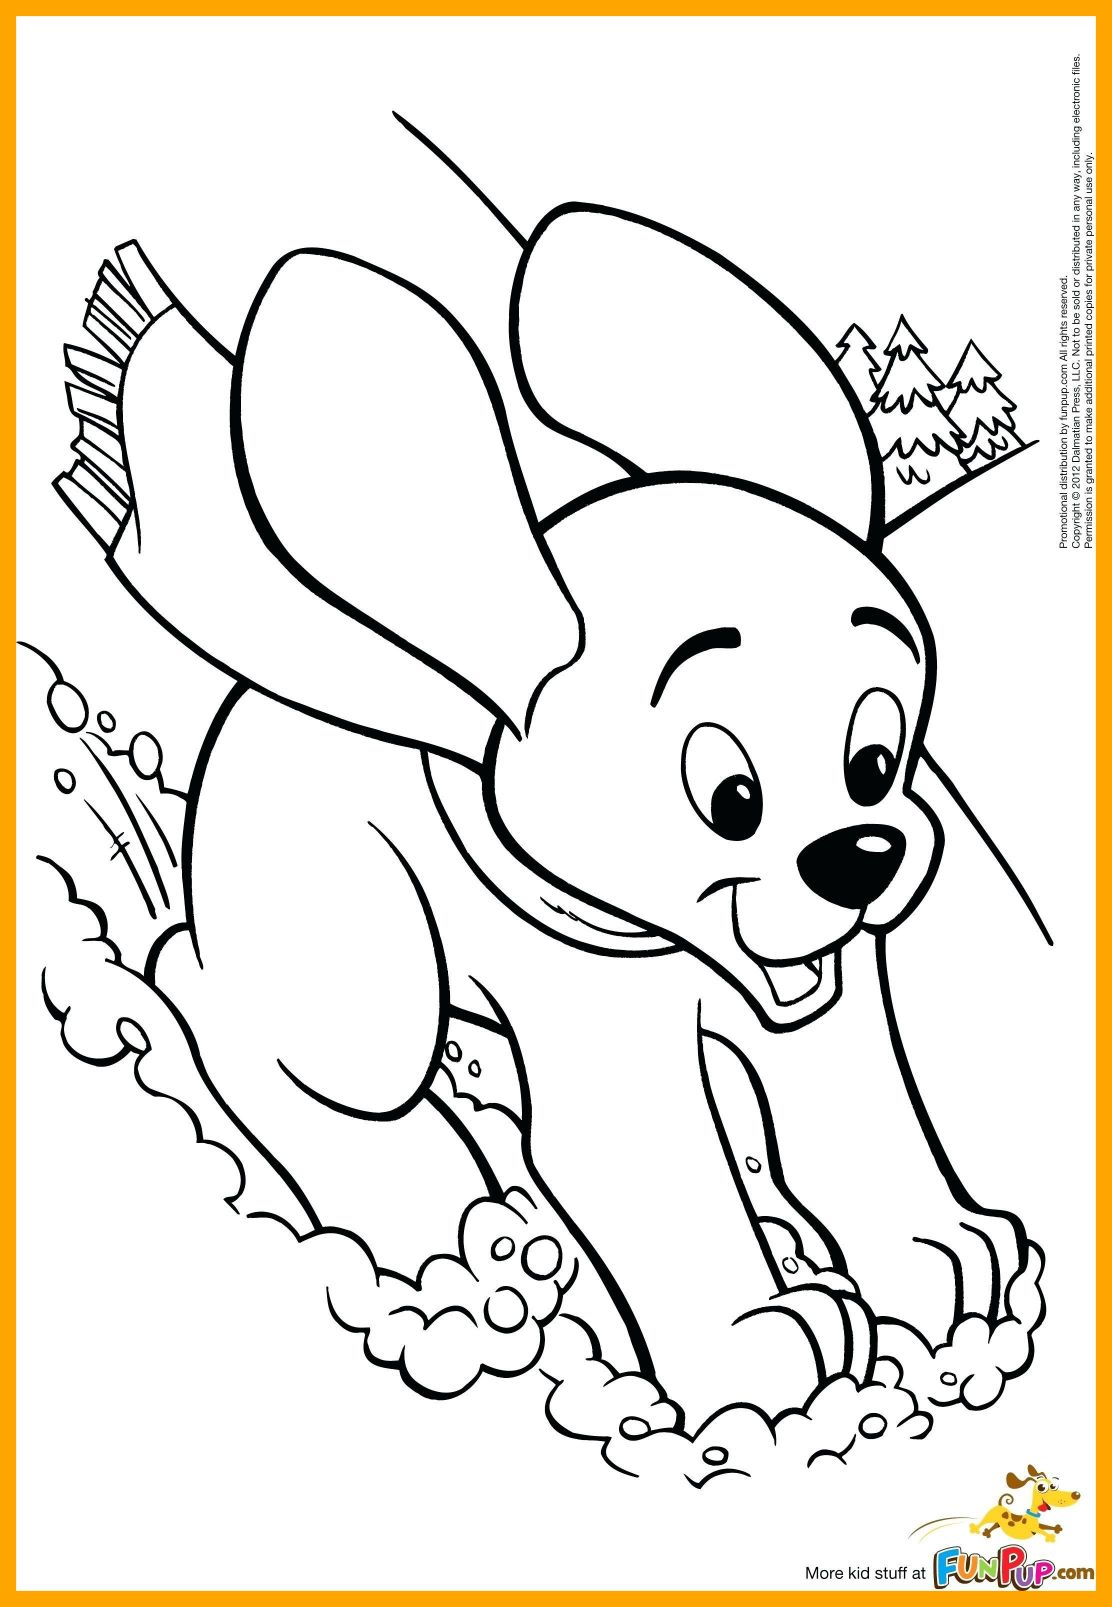 Golden Retriever Puppy Coloring Pages At Getdrawings Com